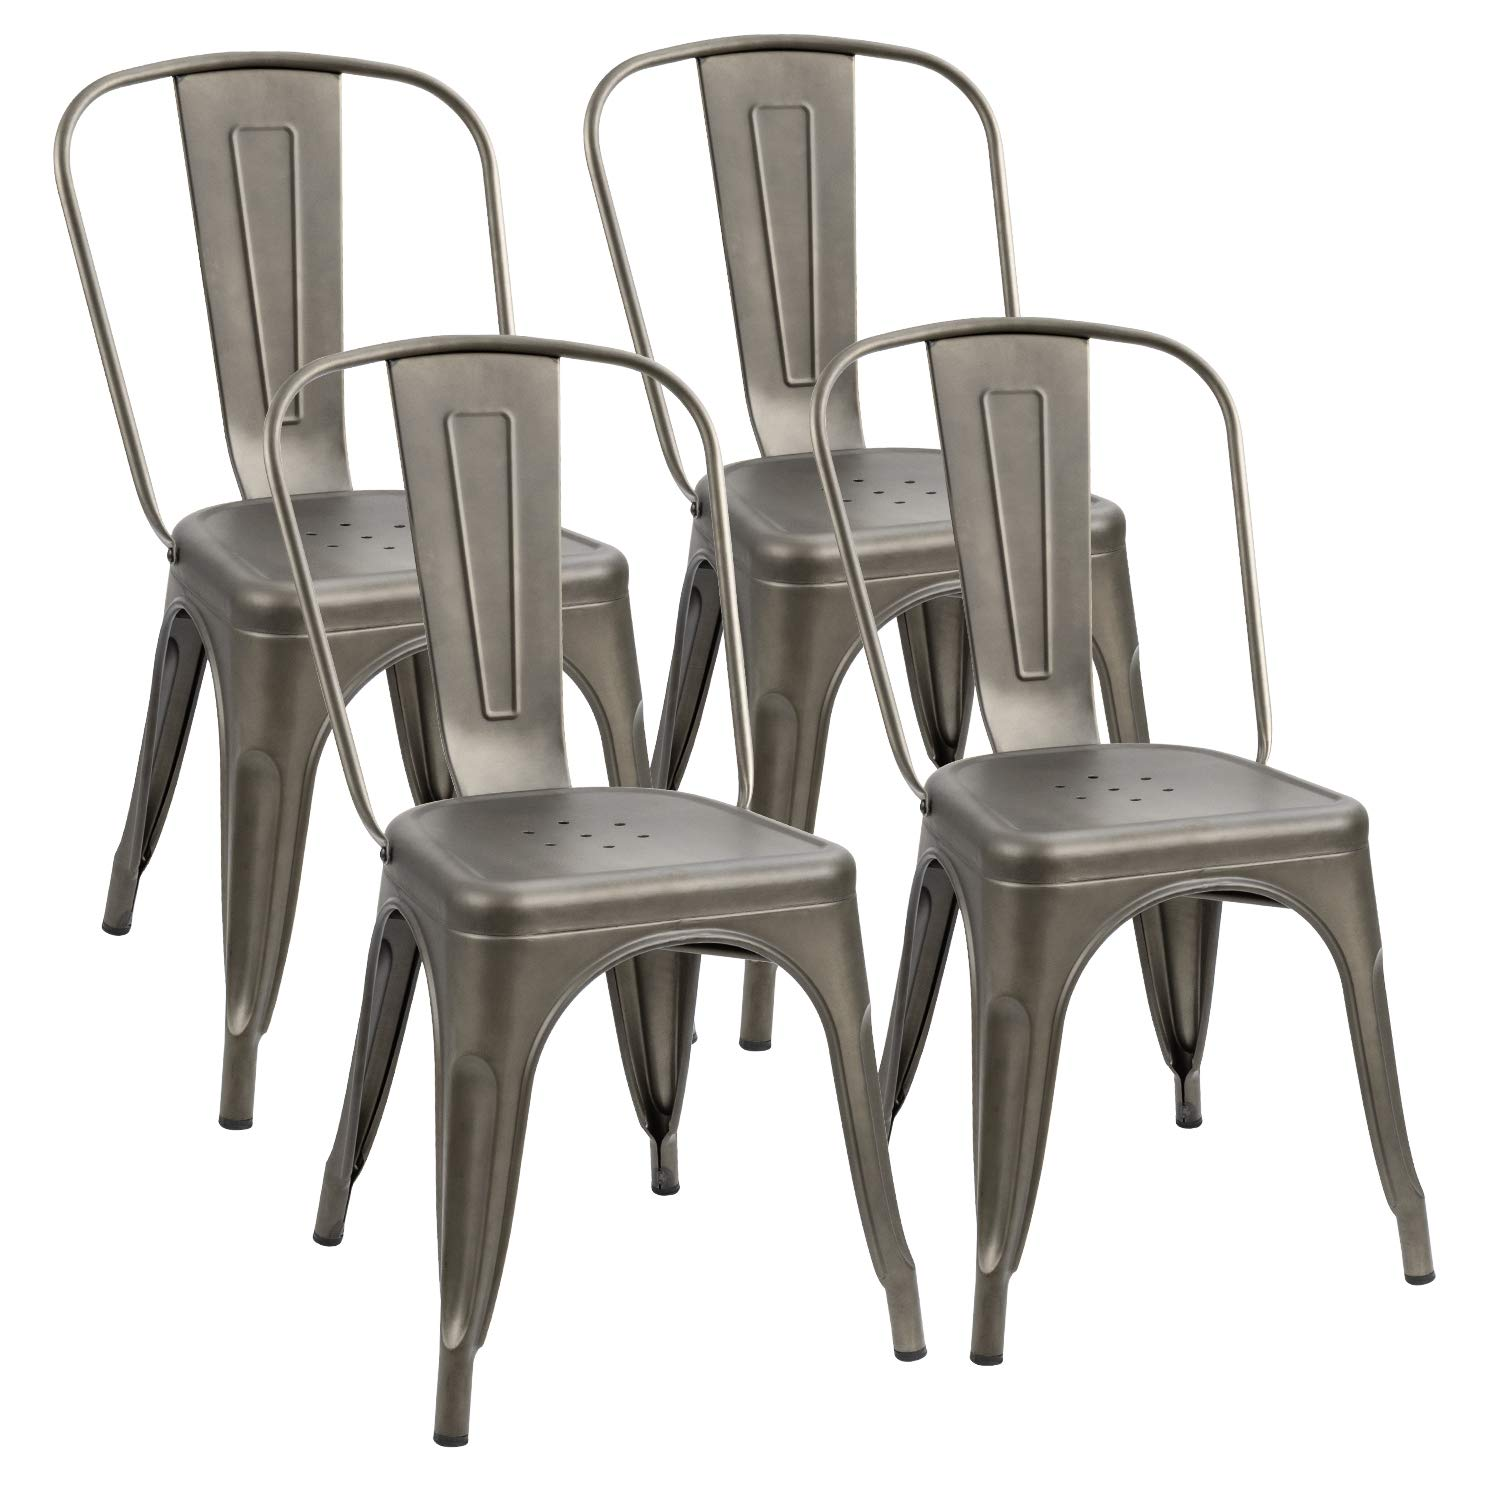 Flamaker Metal Dining Chairs Stackable Kitchen Dining Chairs Metal Chairs Bistro Cafe Side Chairs Height Restaurant Chairs Tolix Side Bar Chairs, Set of 4 (Gun) by Flamaker